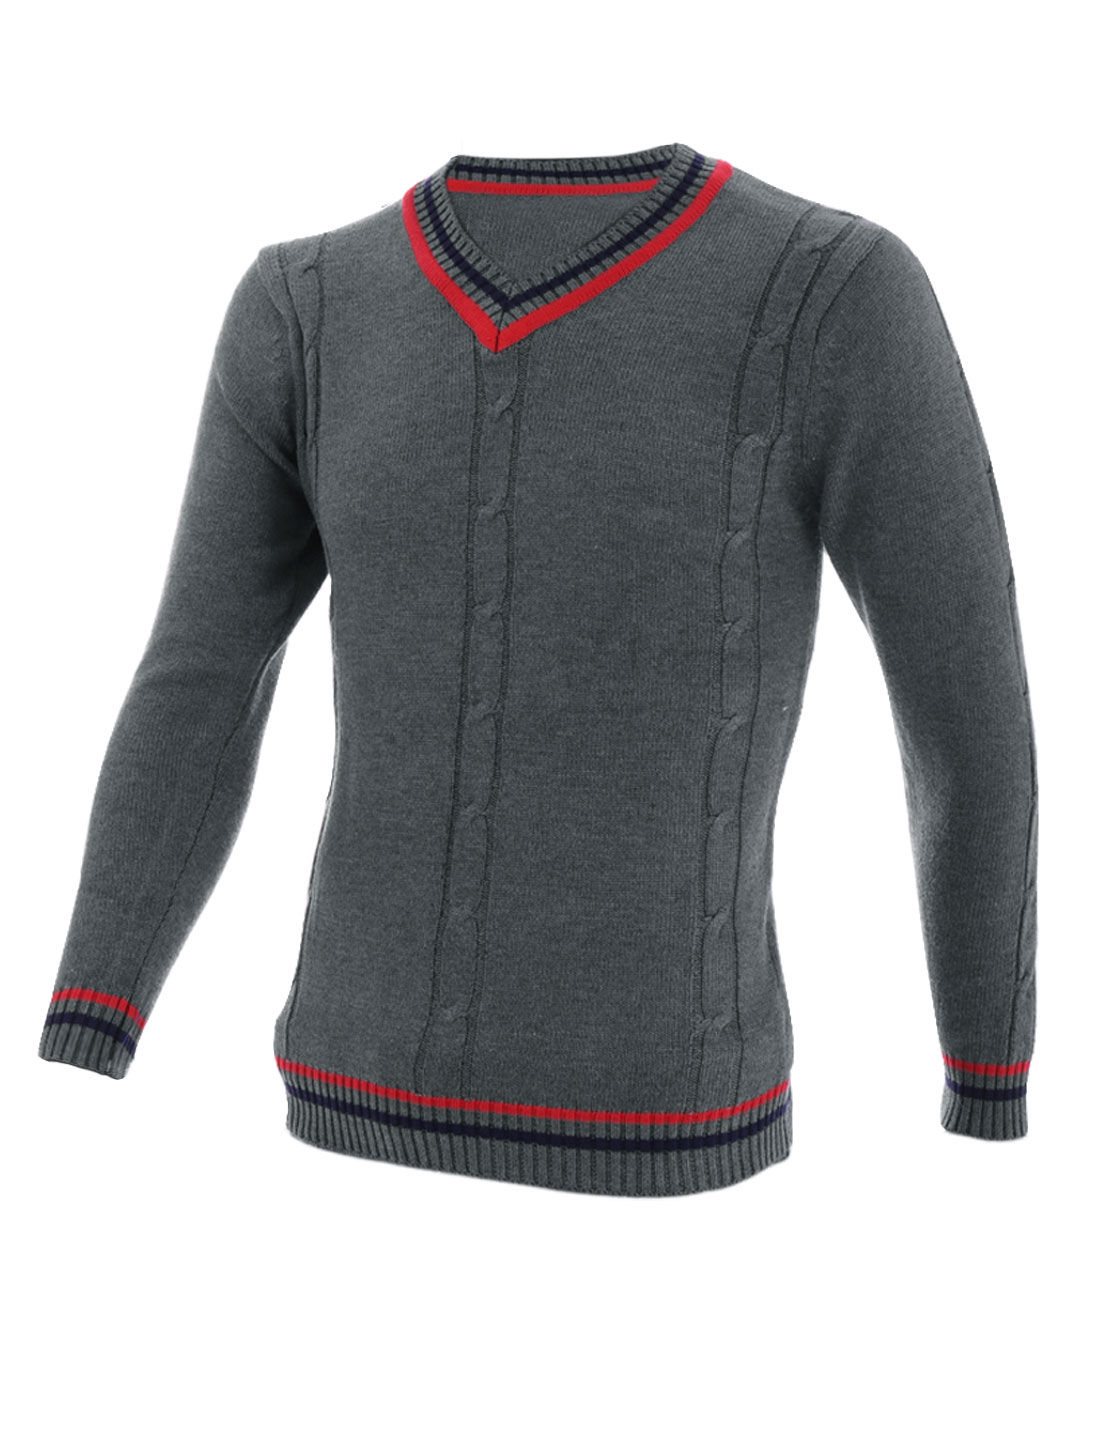 Men Stylish Contrast Color Stripes Detail Sweater Dark Gray S